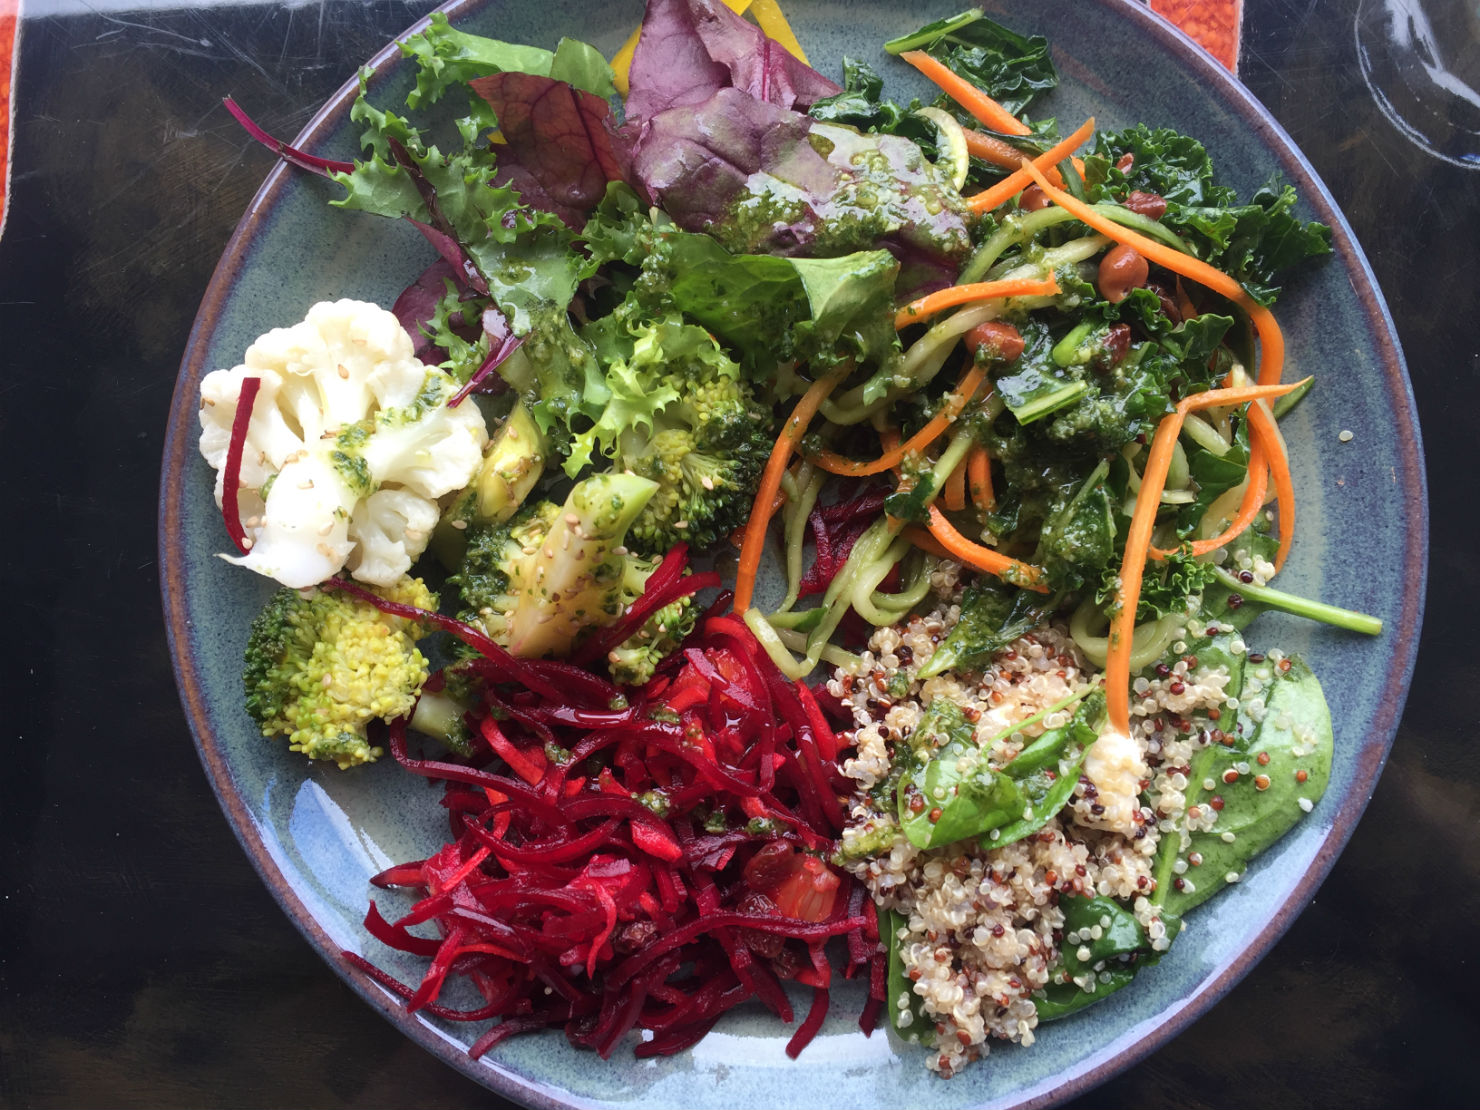 Mixed plate of colourful salads for £4.95